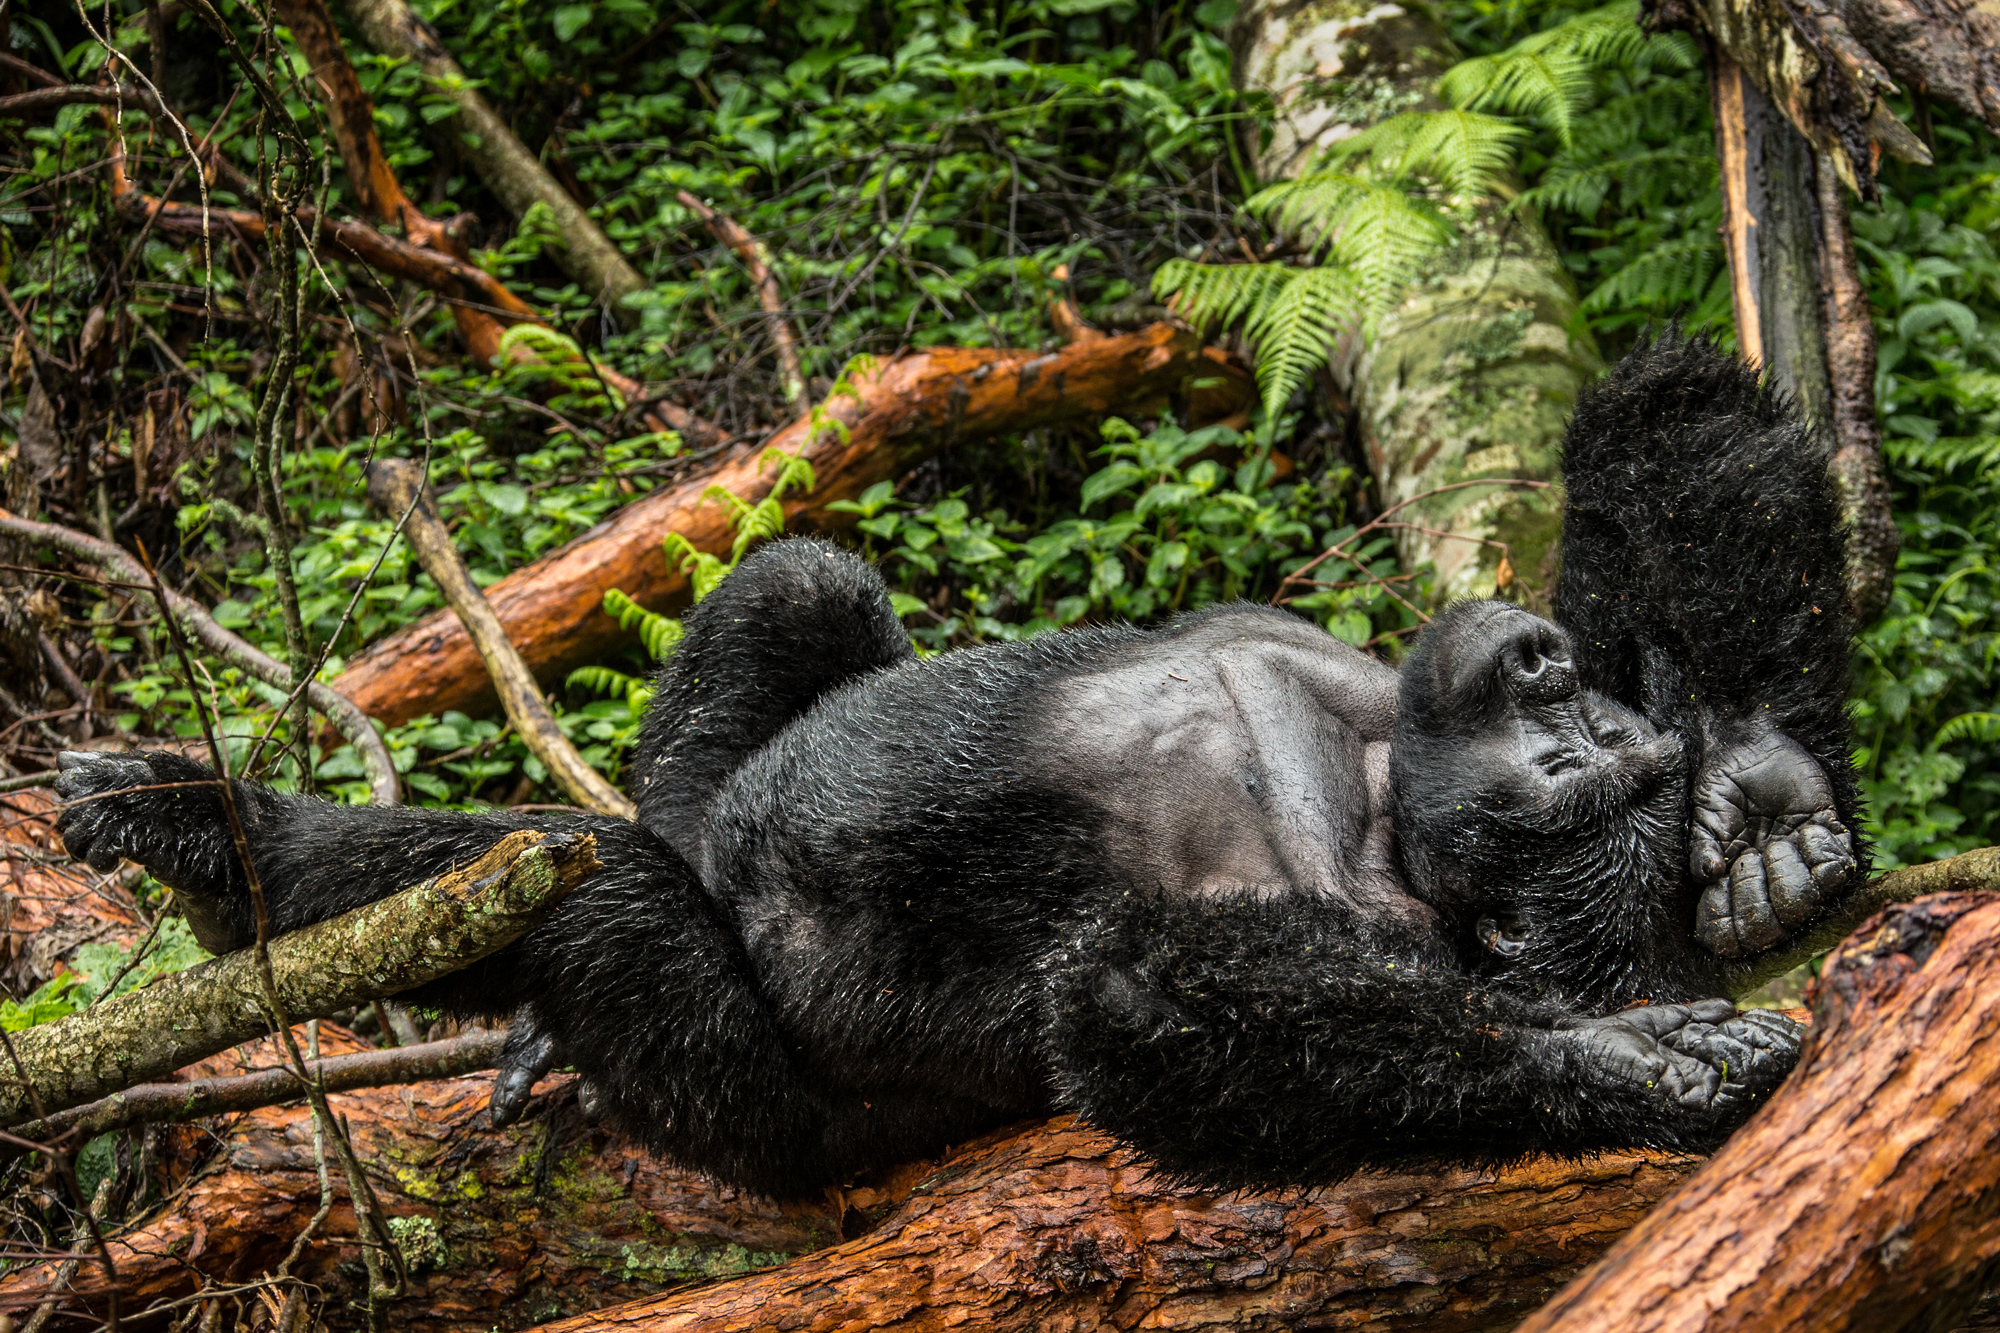 Dominant silverback resting in Mgahinga Gorilla National Park in Uganda